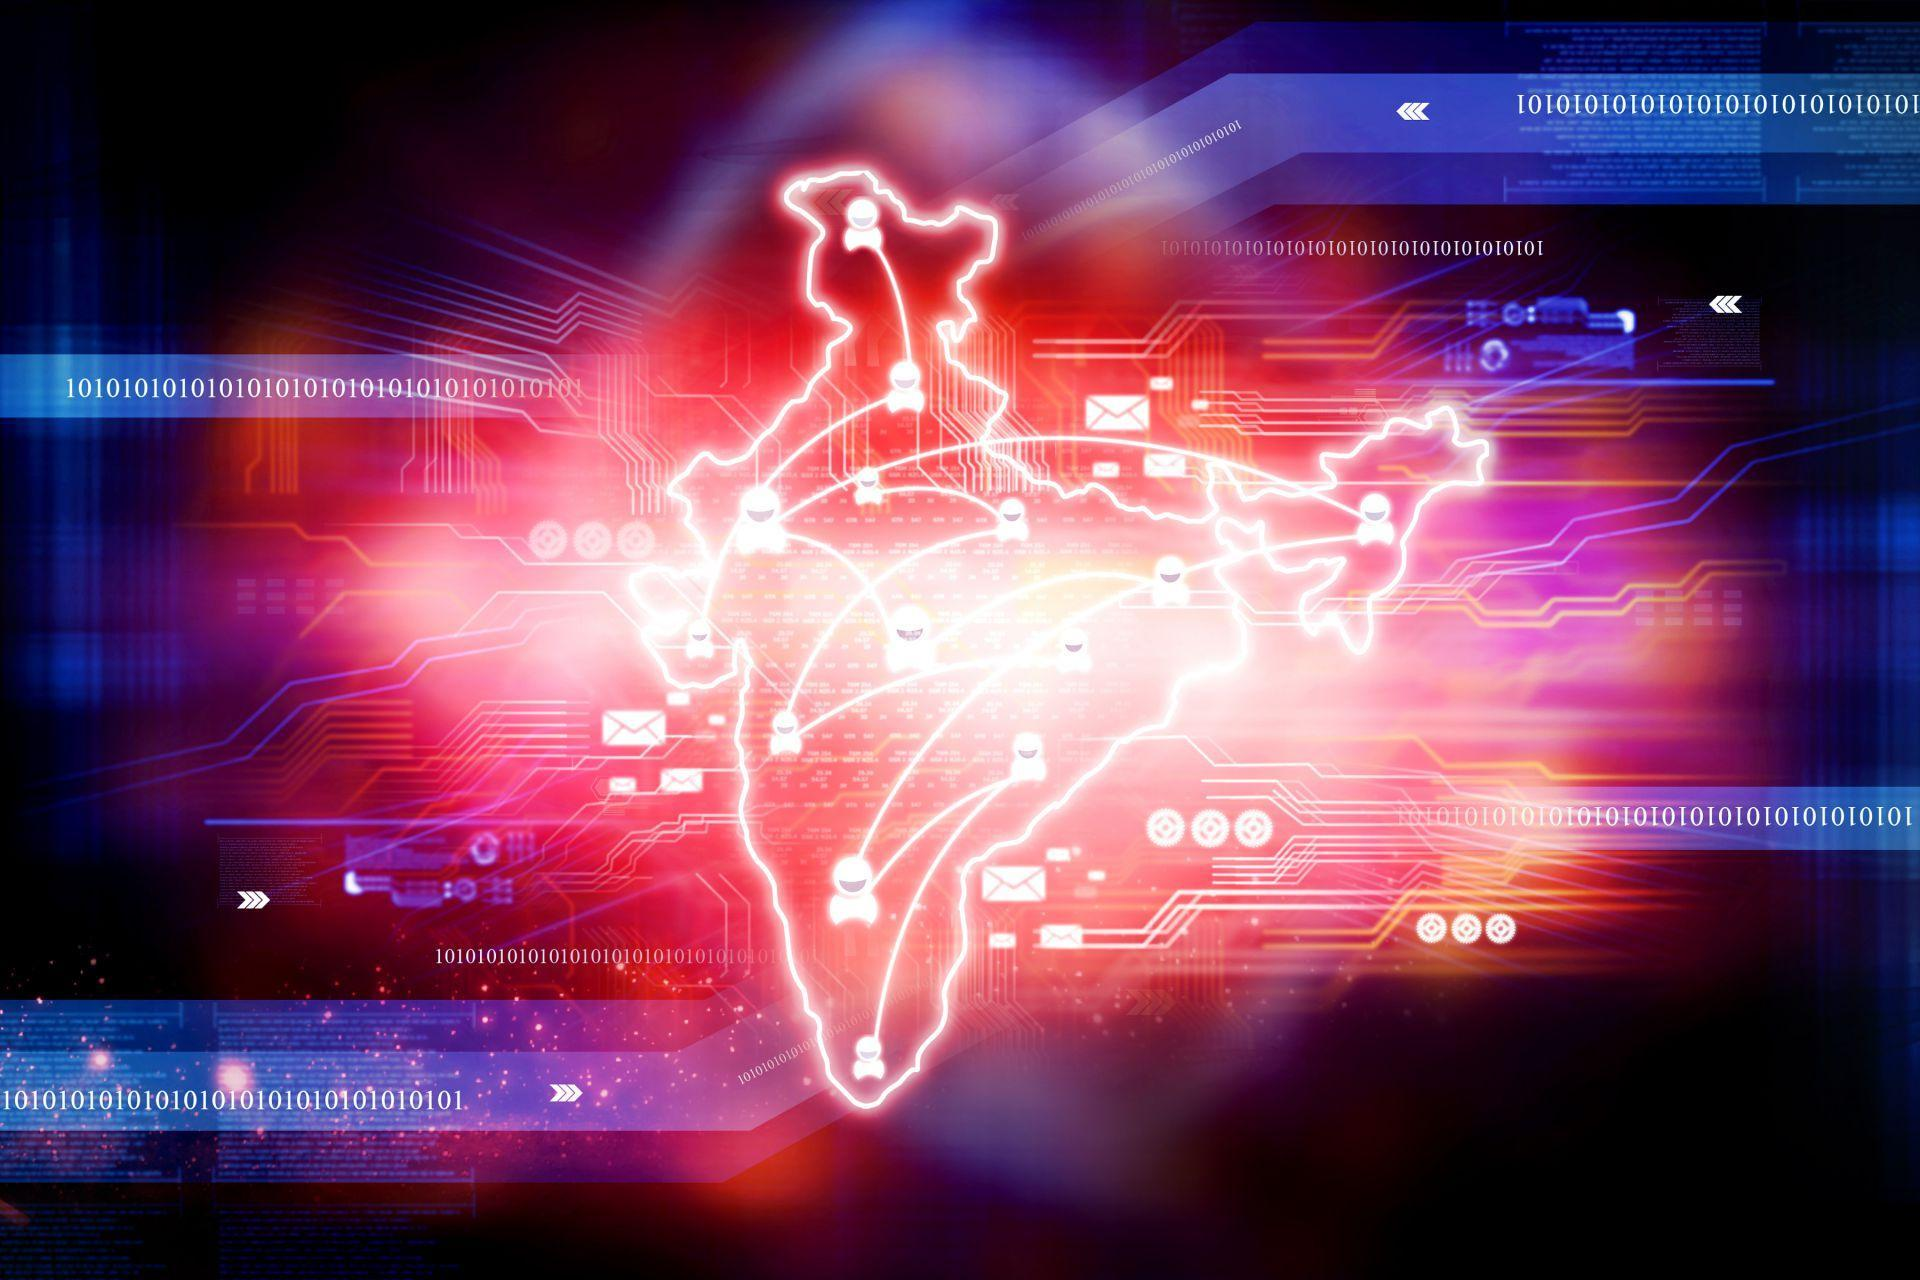 Call for Interest: 'Partners for International Business' (PIB) Cyber Security India